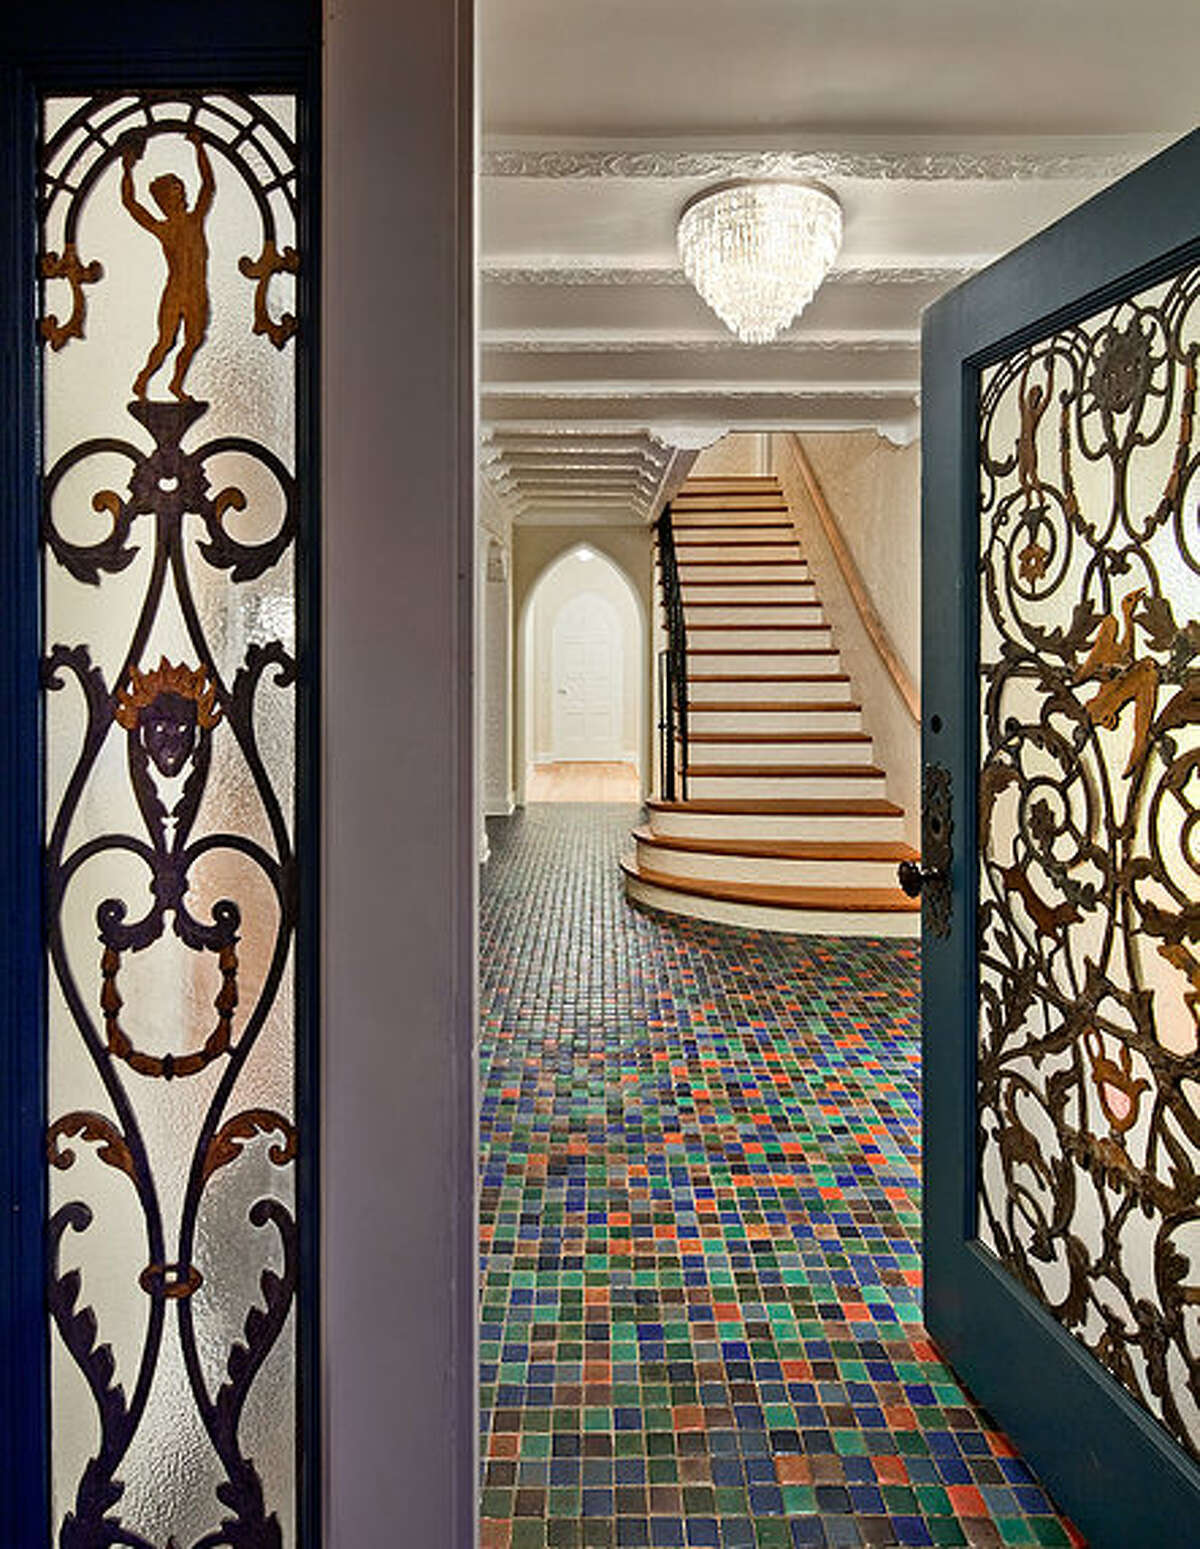 Entry of 2222 Everett Ave. E., in Capitol Hill. The 6,897-square-foot Mediterranean-style home, built in 1926, has four bedrooms, three bathrooms, two fireplaces, ornate, hand-restored ironwork and millwork, a ballroom, an office, a family room, a game room, a media room, a sun room, a play room, a two-car garage, a 1,794-square-foot unfinished sub-basement, a fountain, decks and patios on a 30,986-square-foot property. It's listed for $3.495 million.